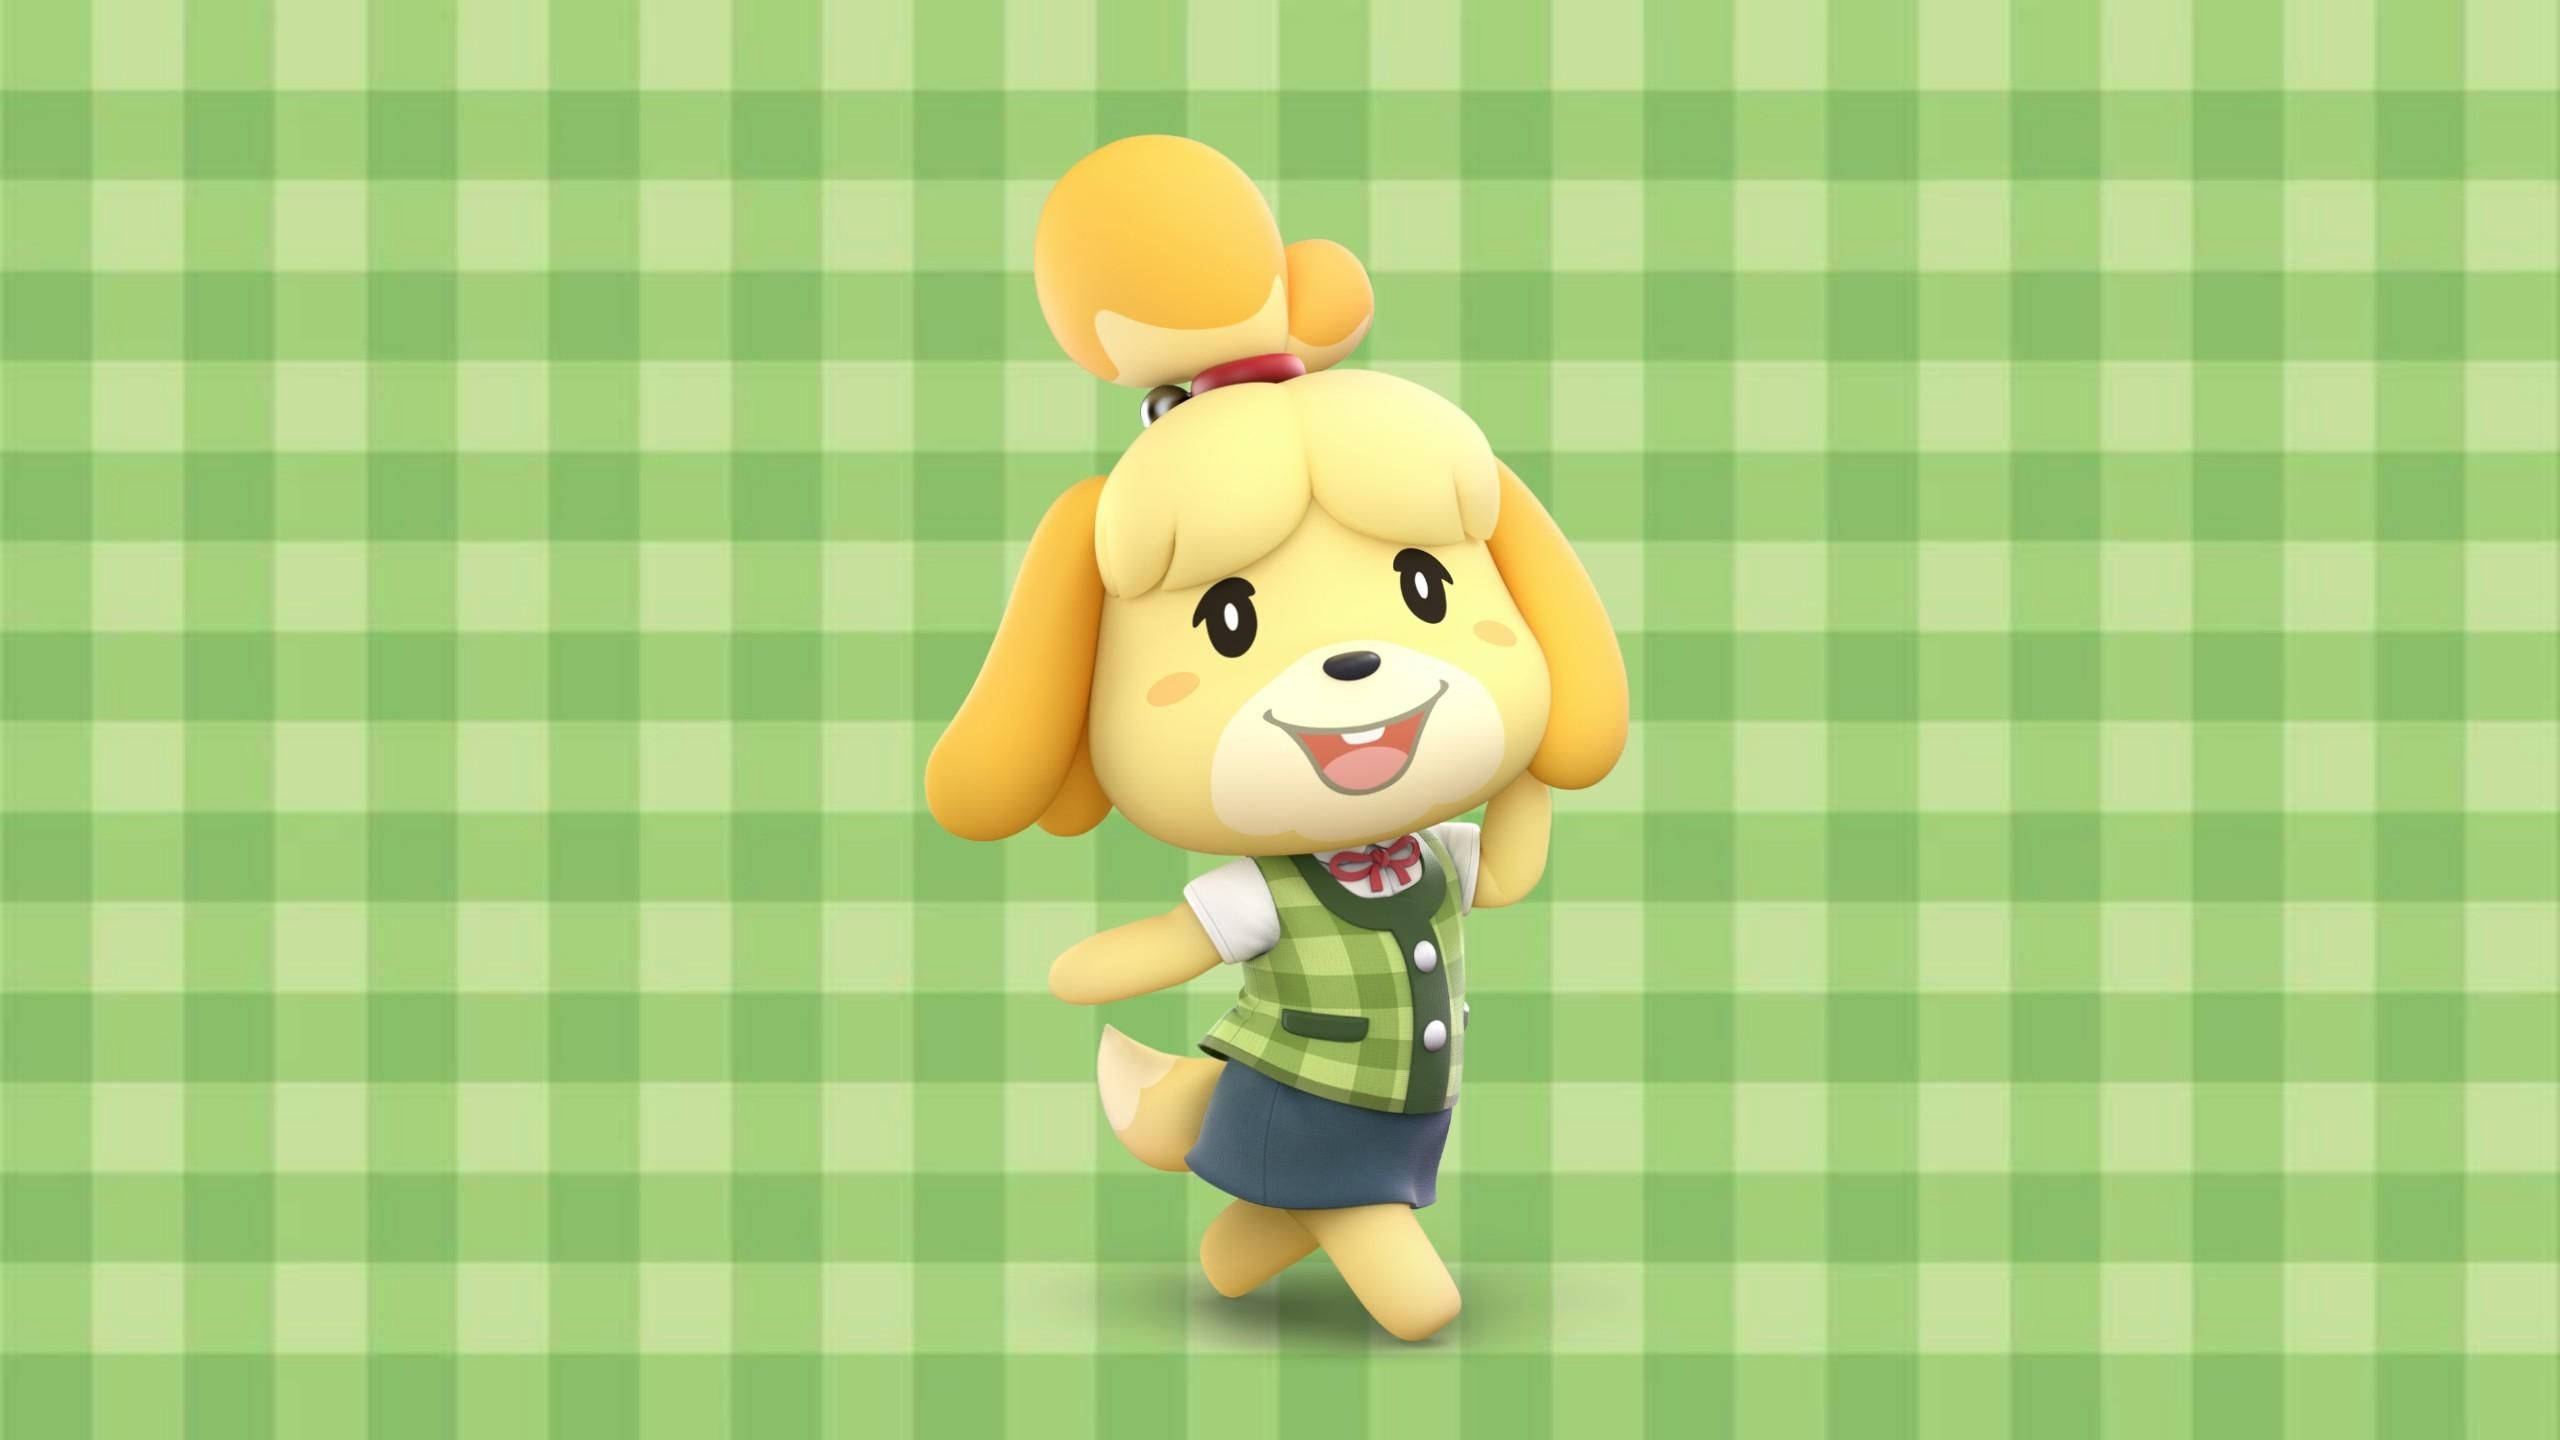 Immagine Correlata Cute Wallpapers For Ipad Animal Crossing